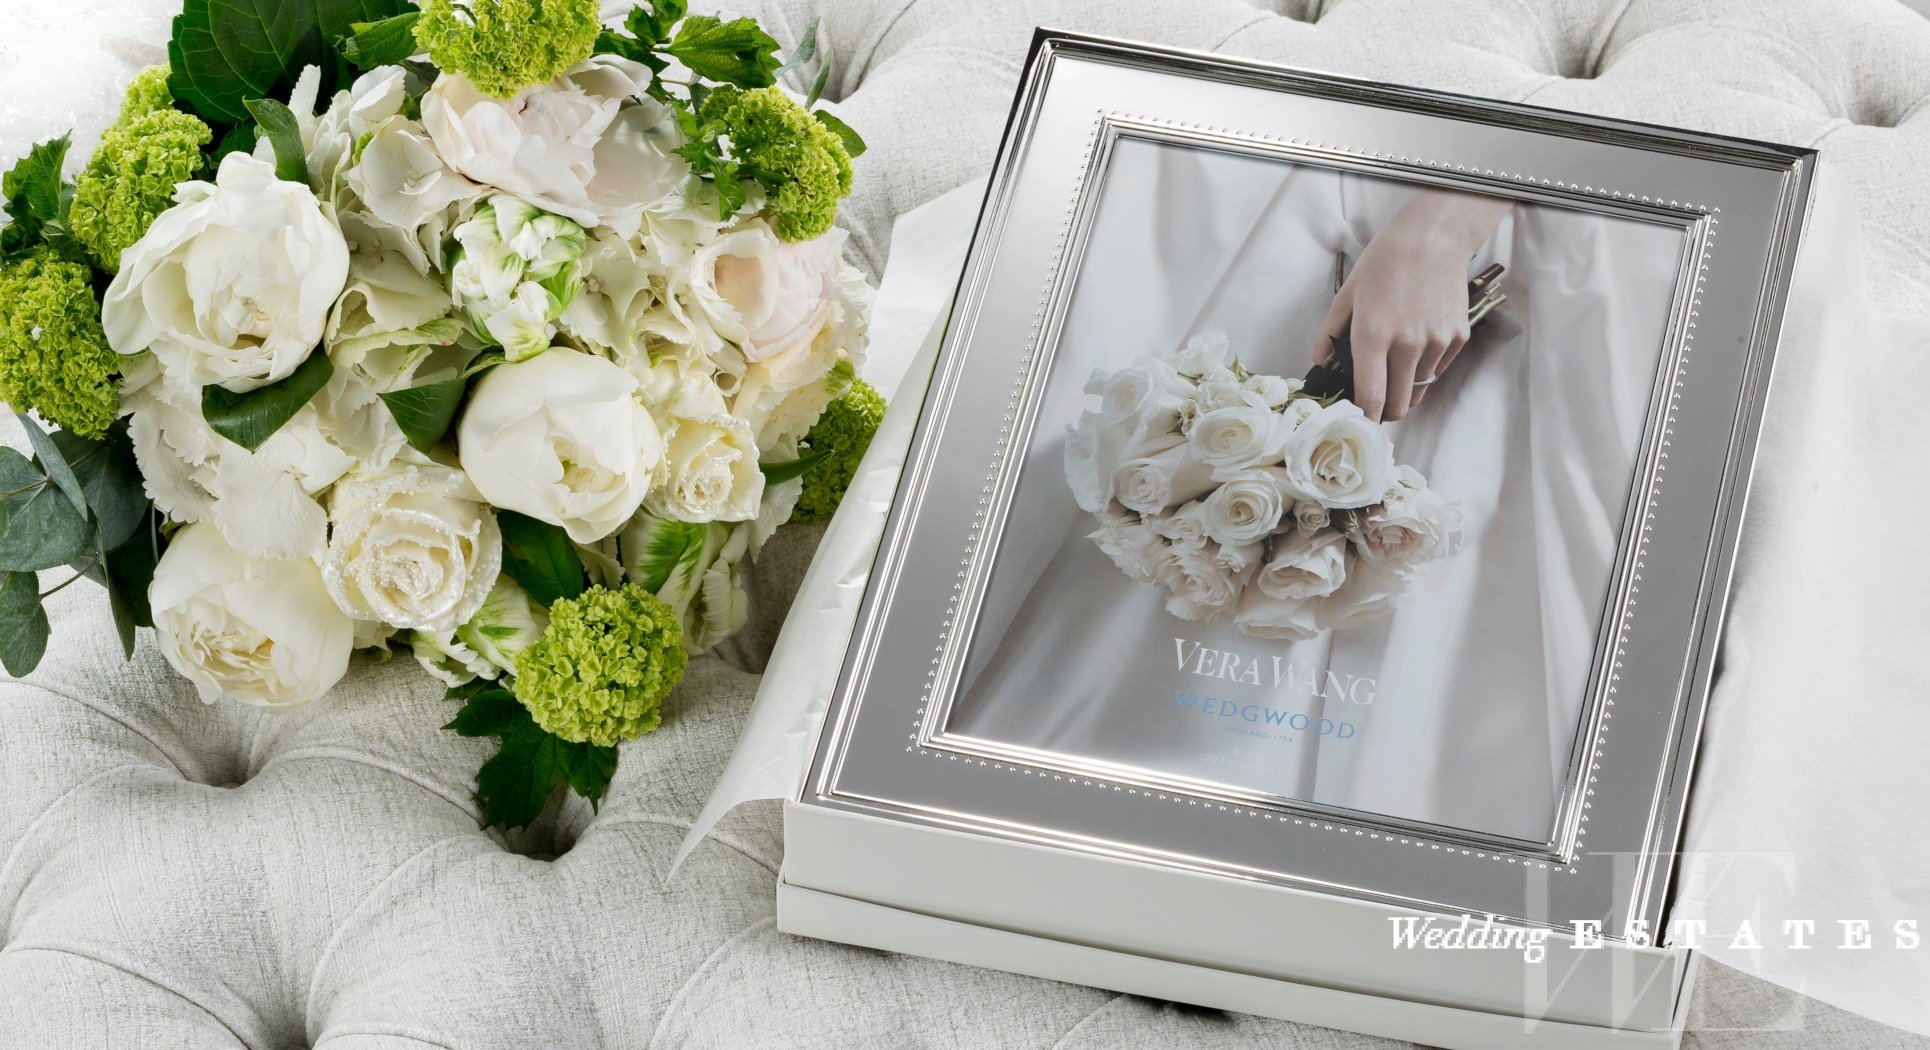 Unique Things To Put On Your Wedding Registry